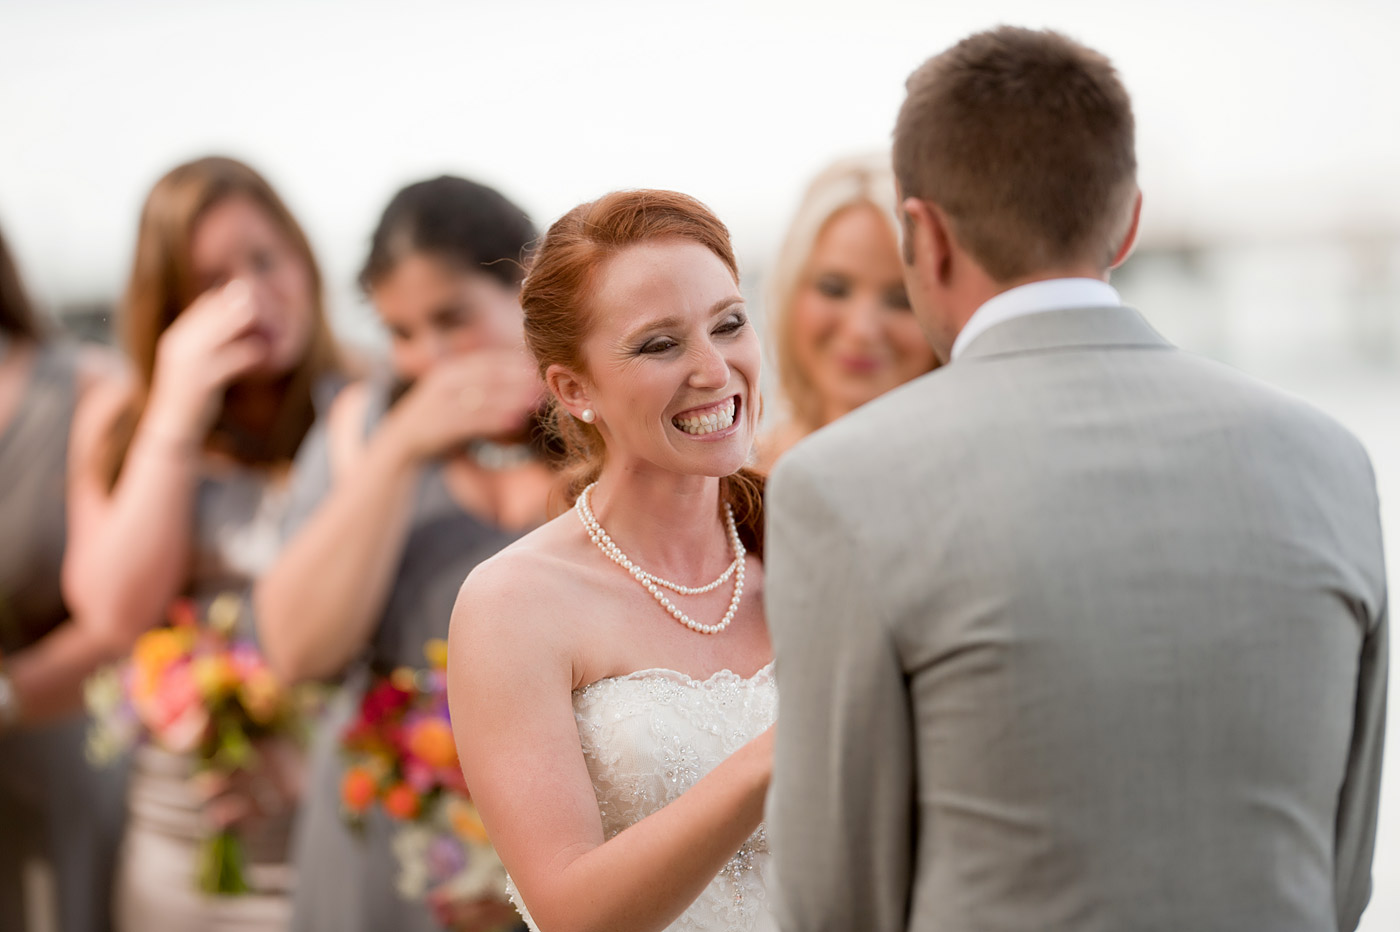 bridesmaids crying next to bride during ceremony.